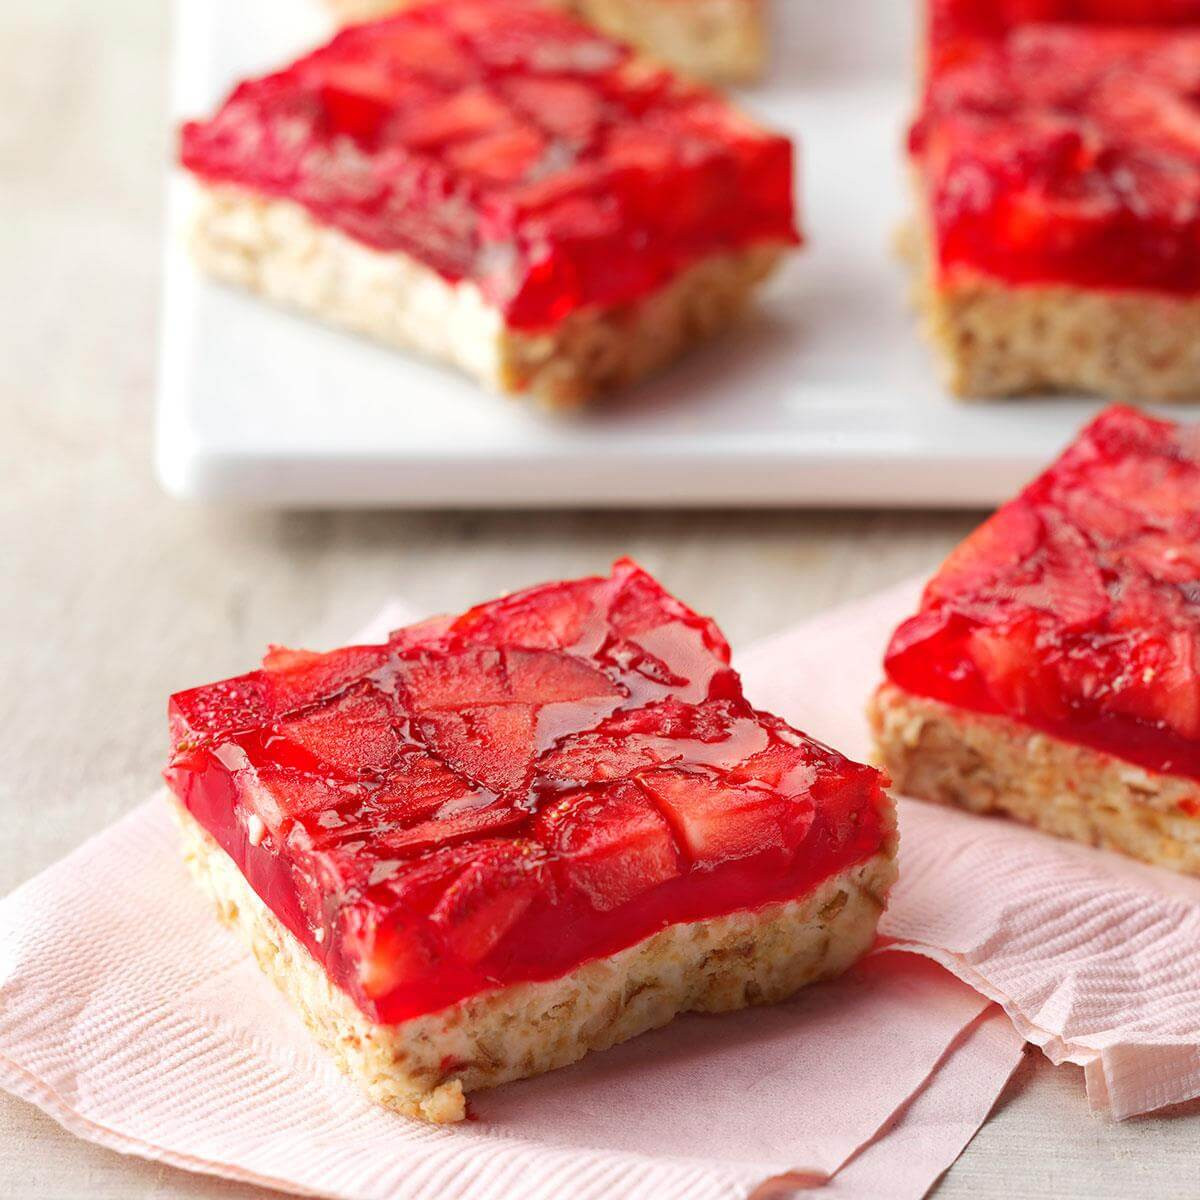 Taste Of Home Strawberry Pretzel Dessert  Strawberry Lime Bars Recipe